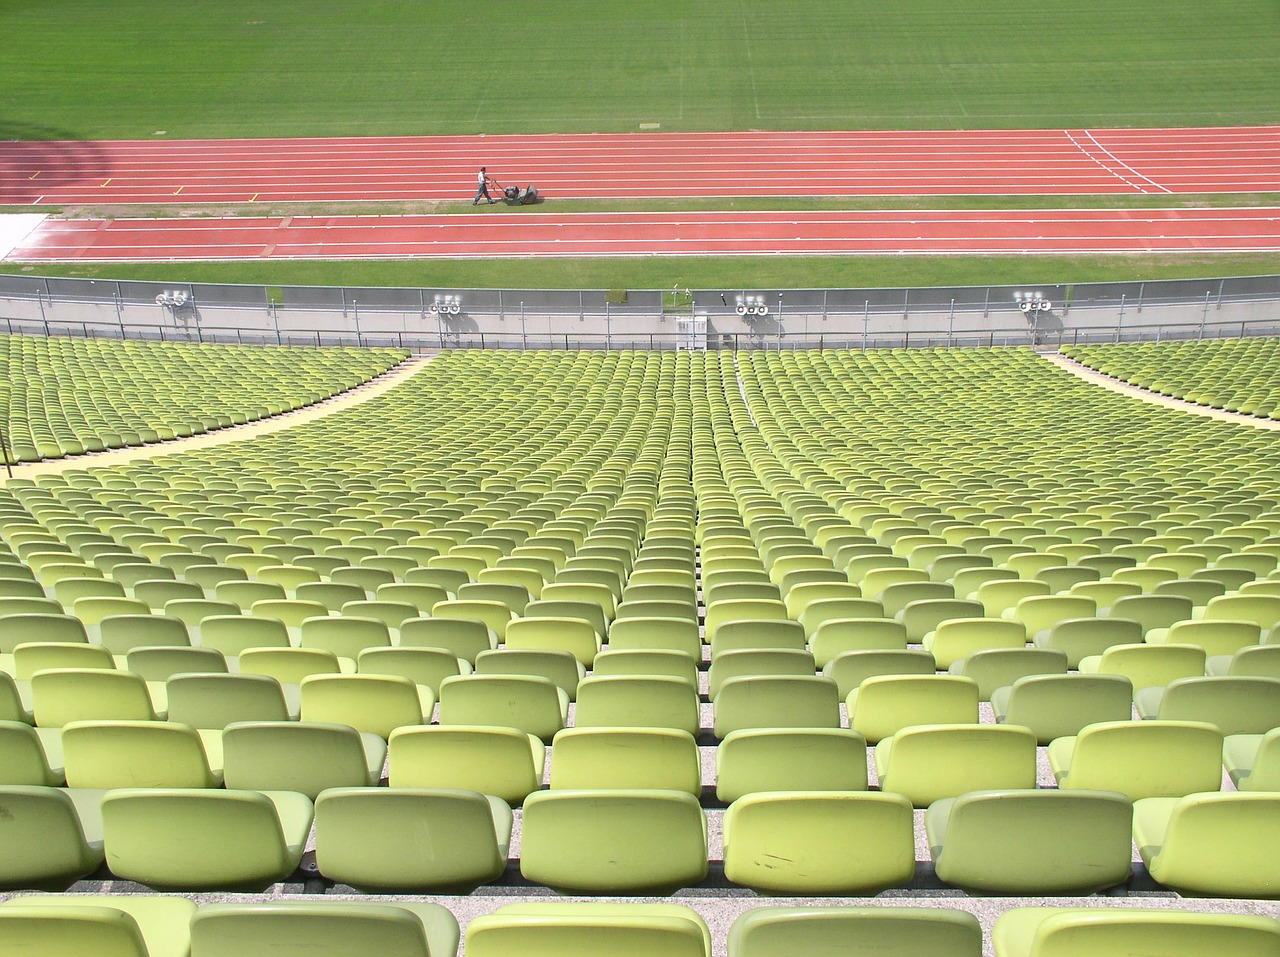 Rows Of Chairs Rows Of Seats Oympiastadion & Rows of chairsrows of seatsoympiastadiongreencareer - free photo ...